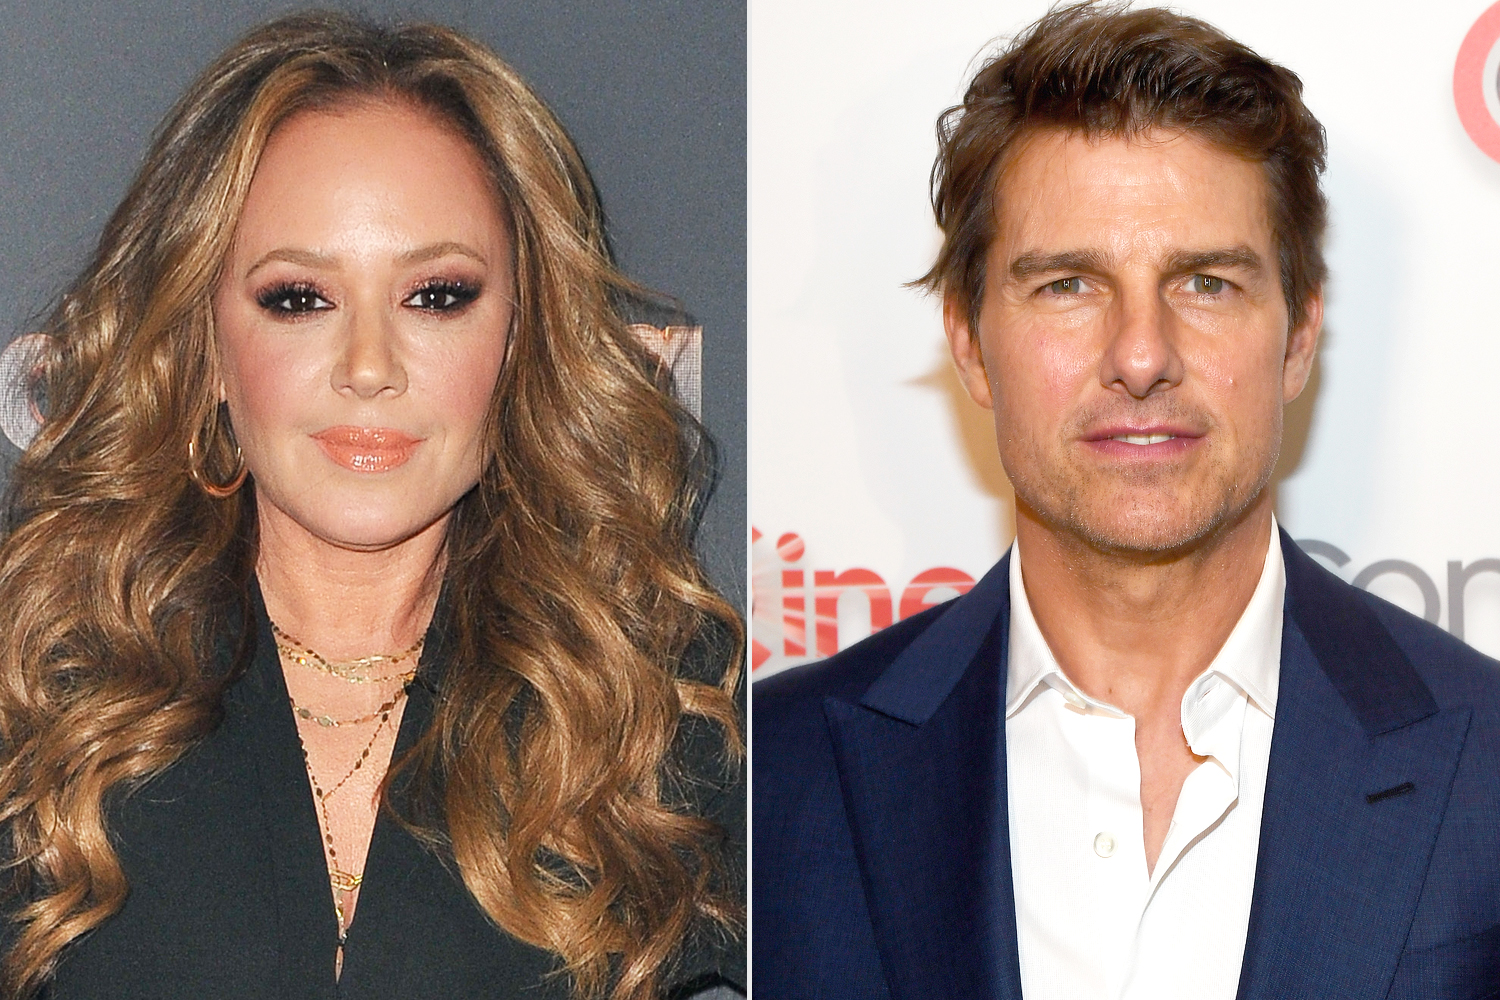 Leah Remini, Tom Cruise